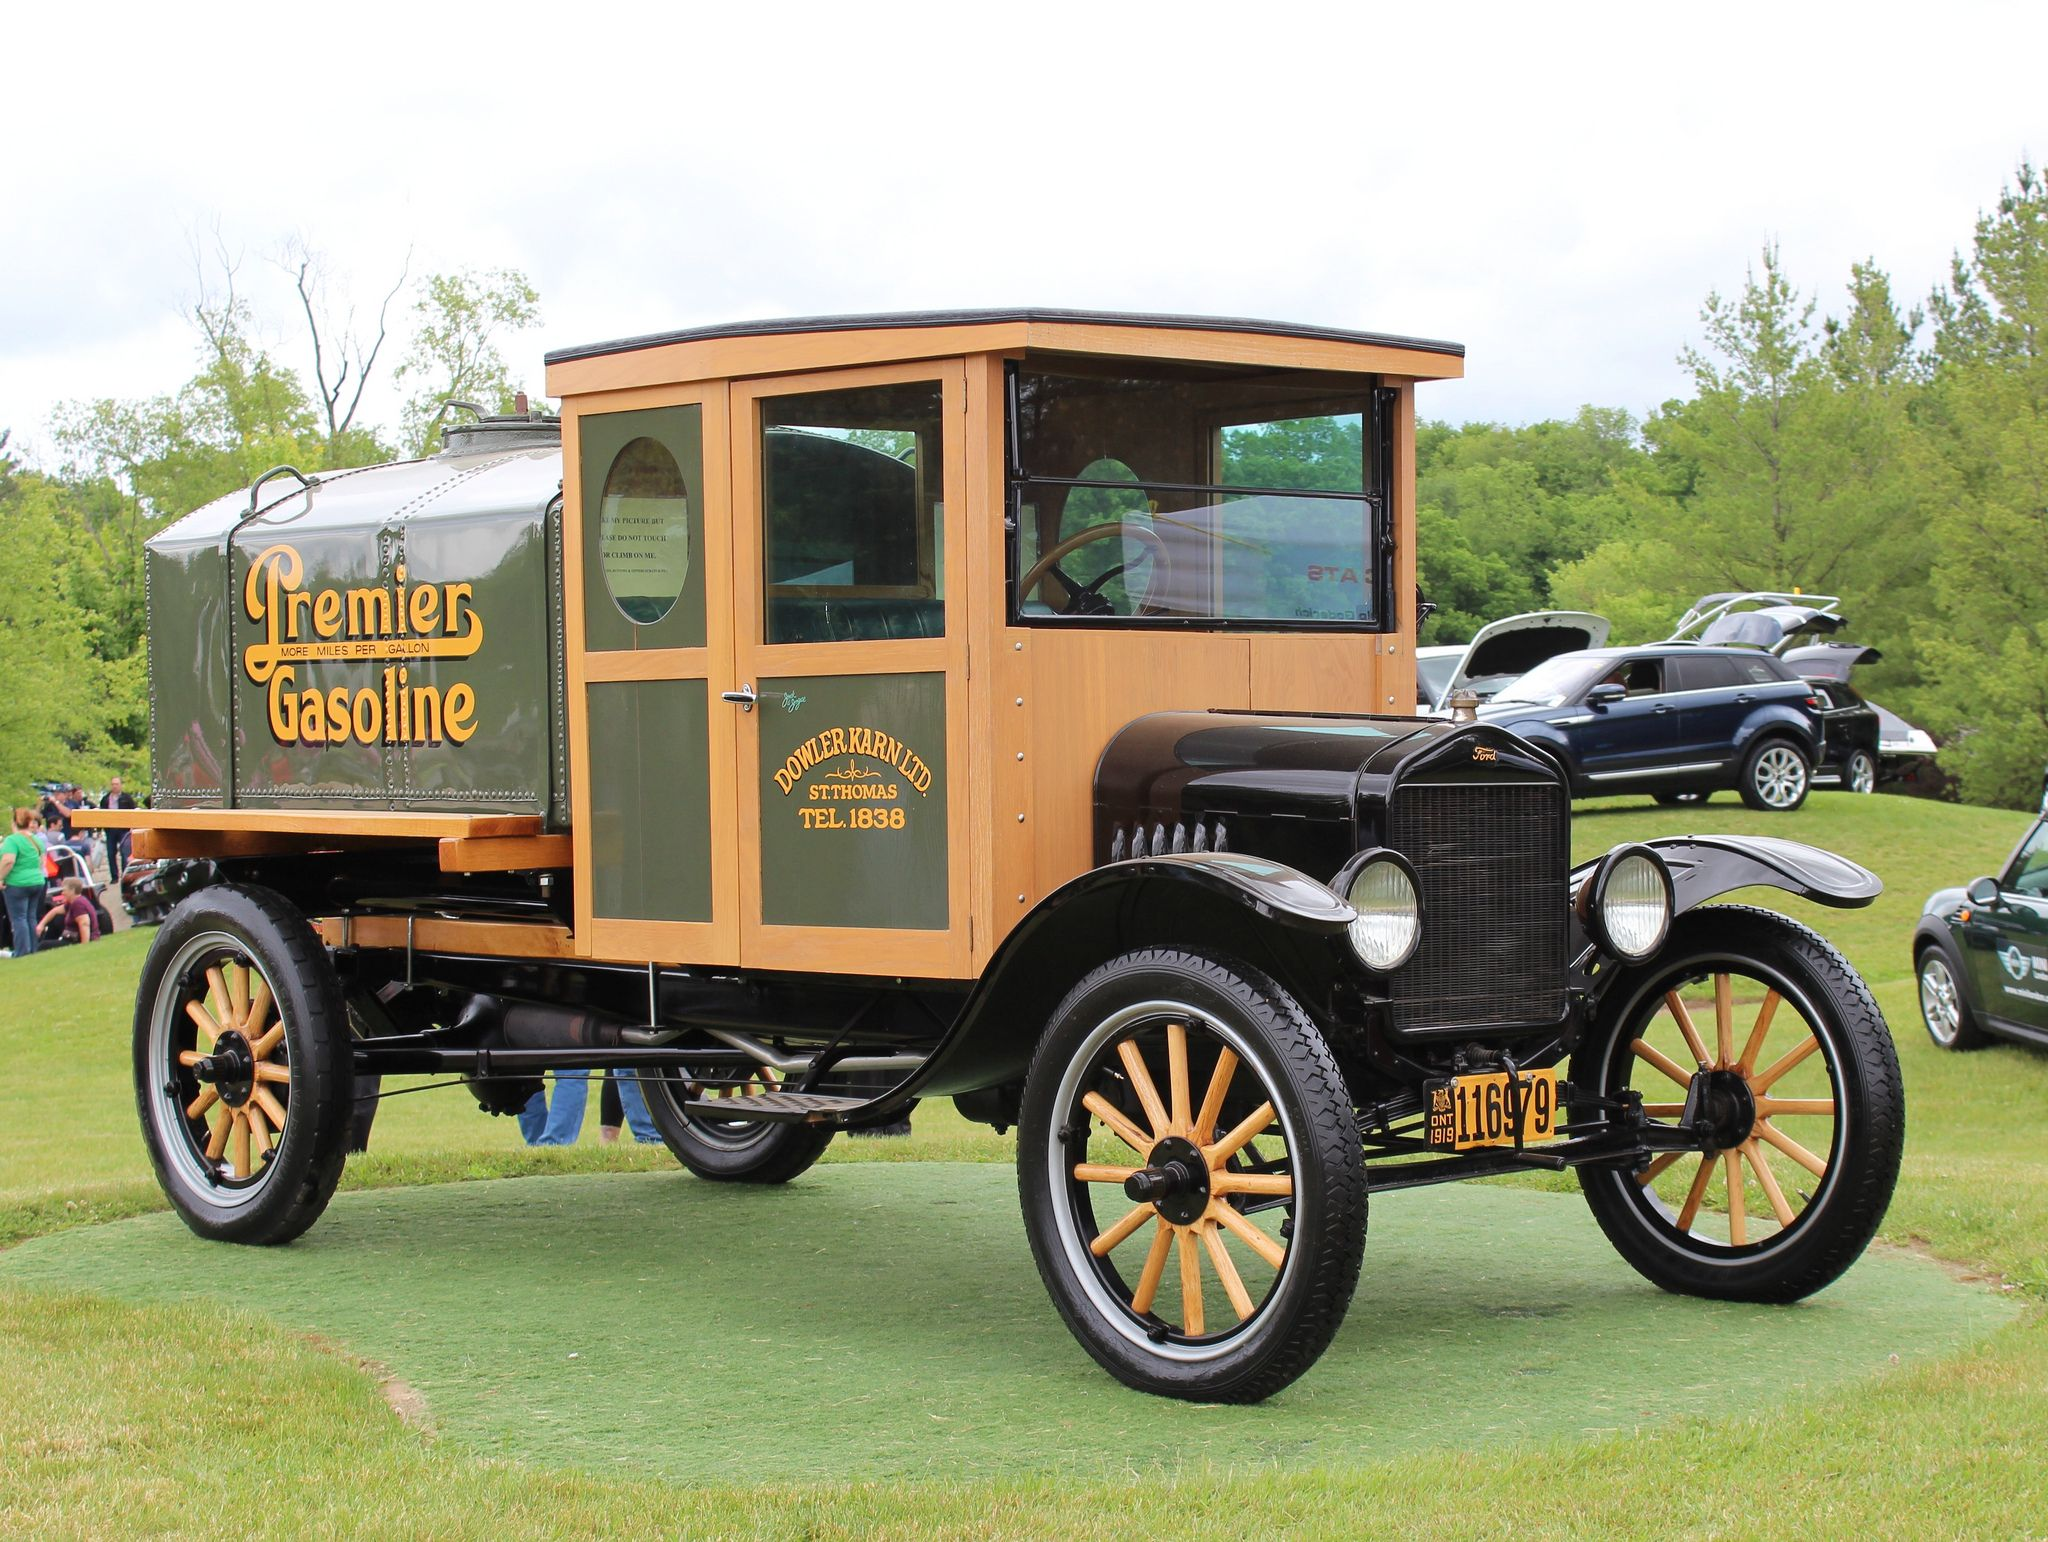 1919 Ford Model TT gas tanker | Ford models, Ford and Cars